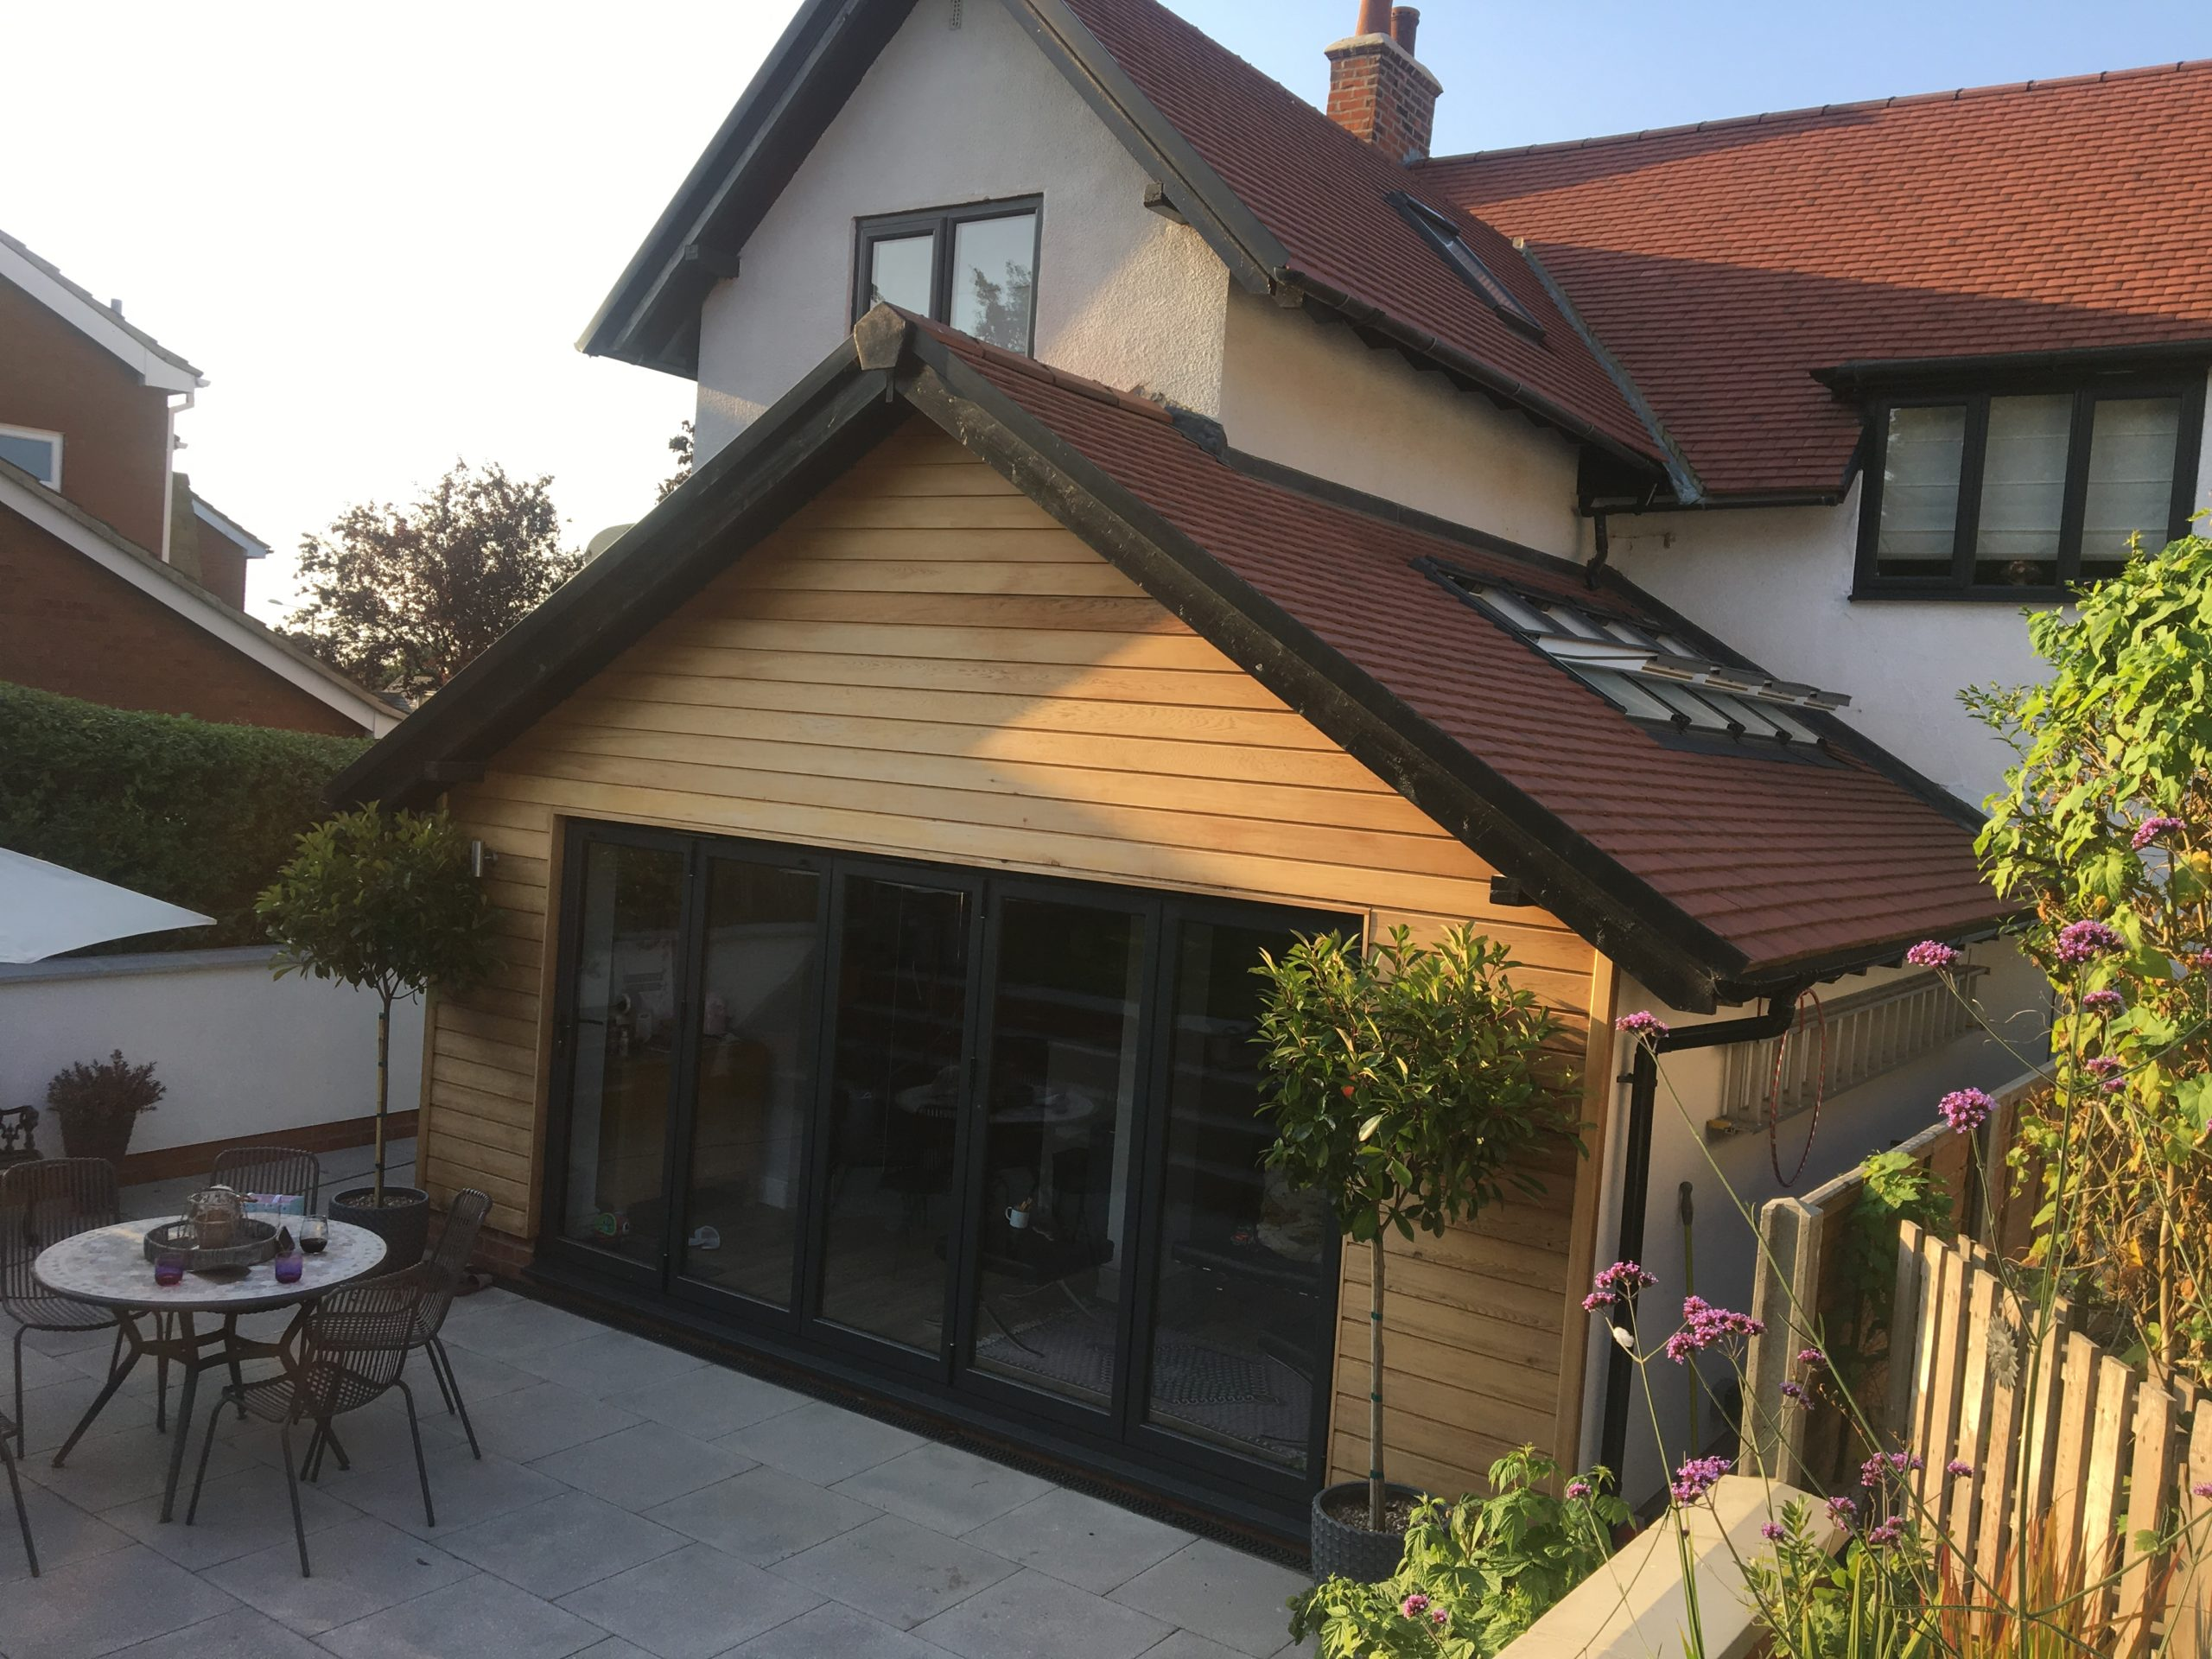 Outside view of rear single storey extension